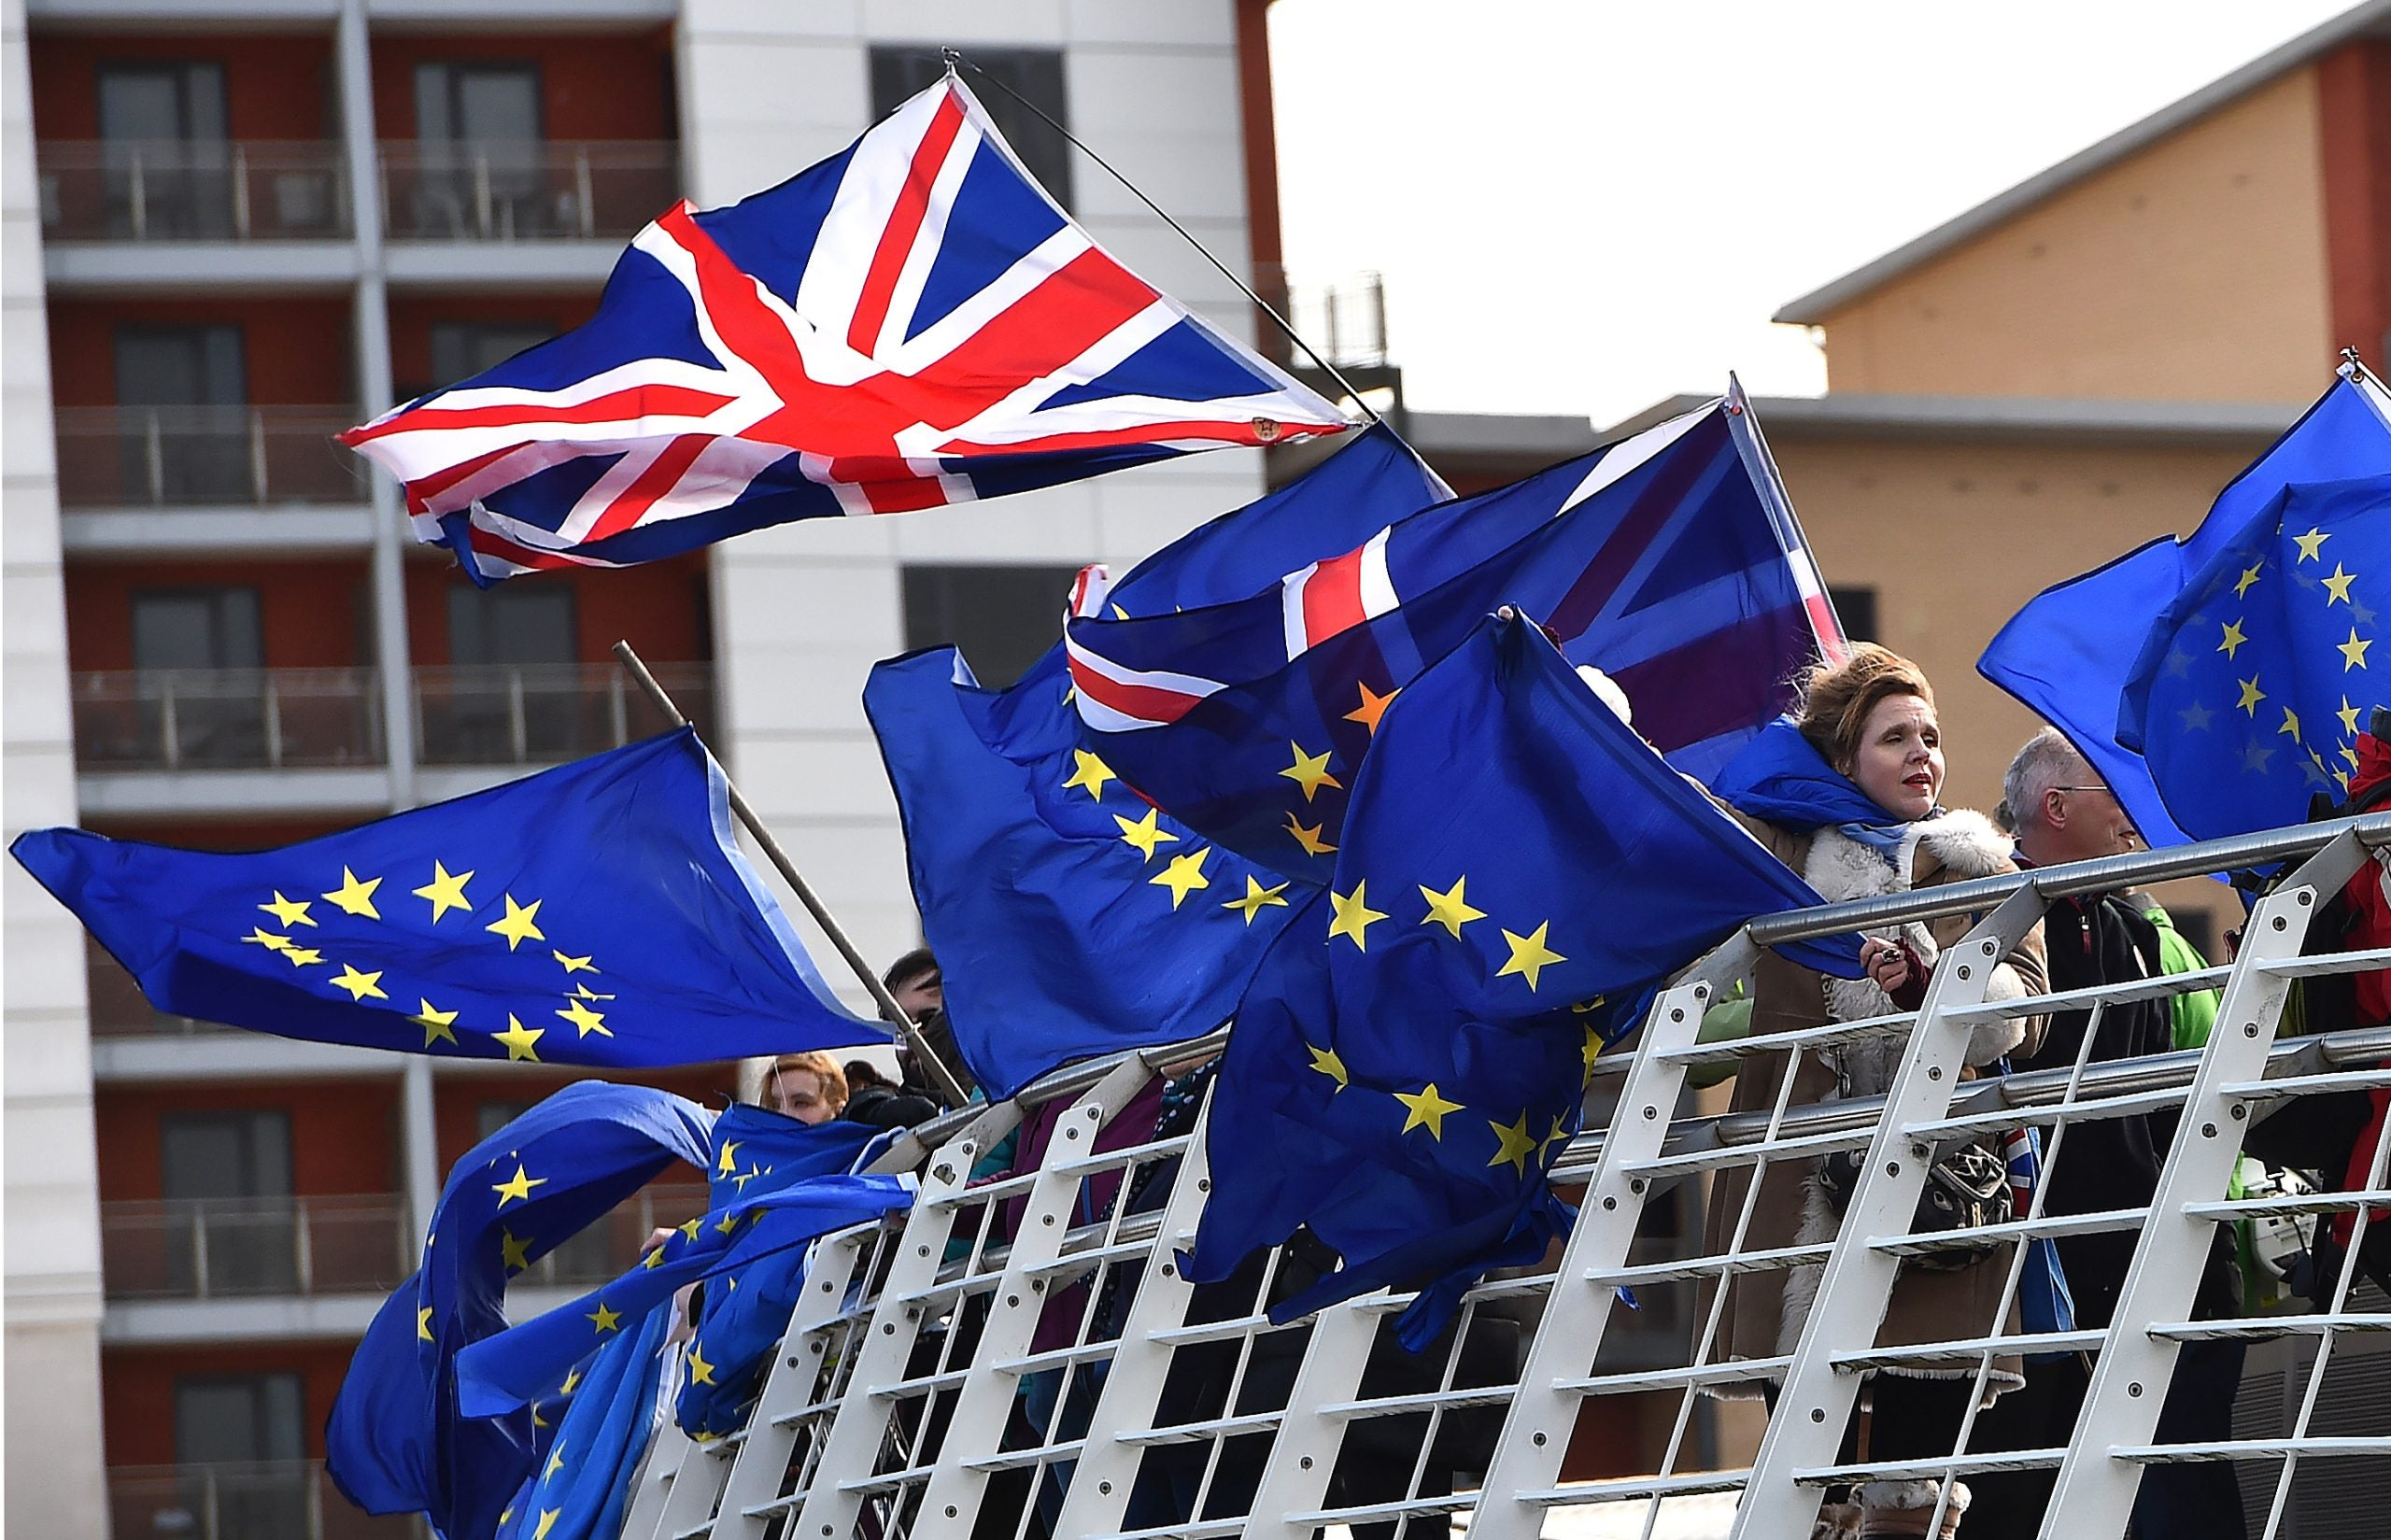 Will the EU grant the UK an Article 50 extension?